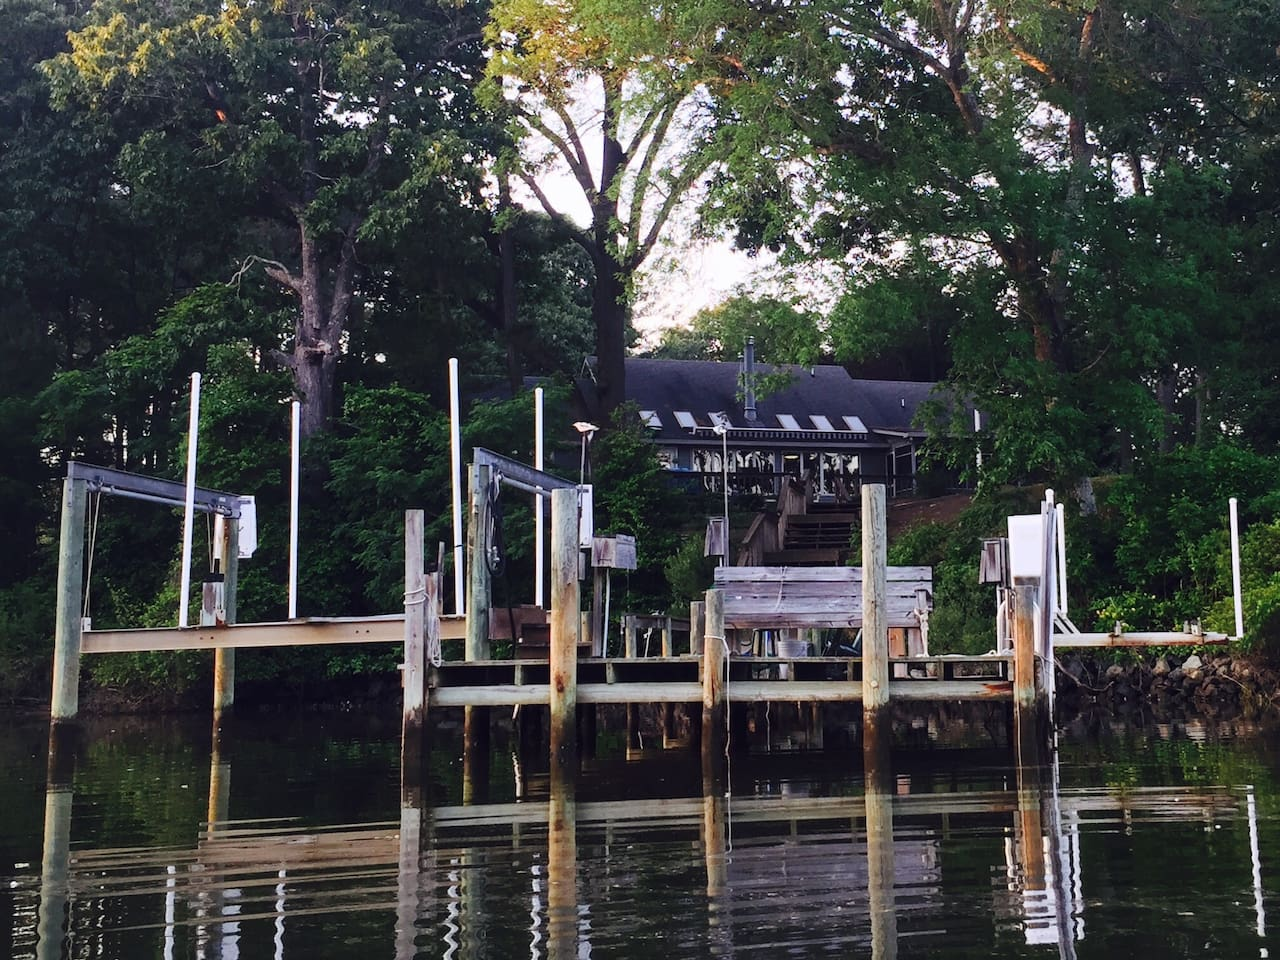 From our kayak, here is a view from the water of our dock with our house in the background.